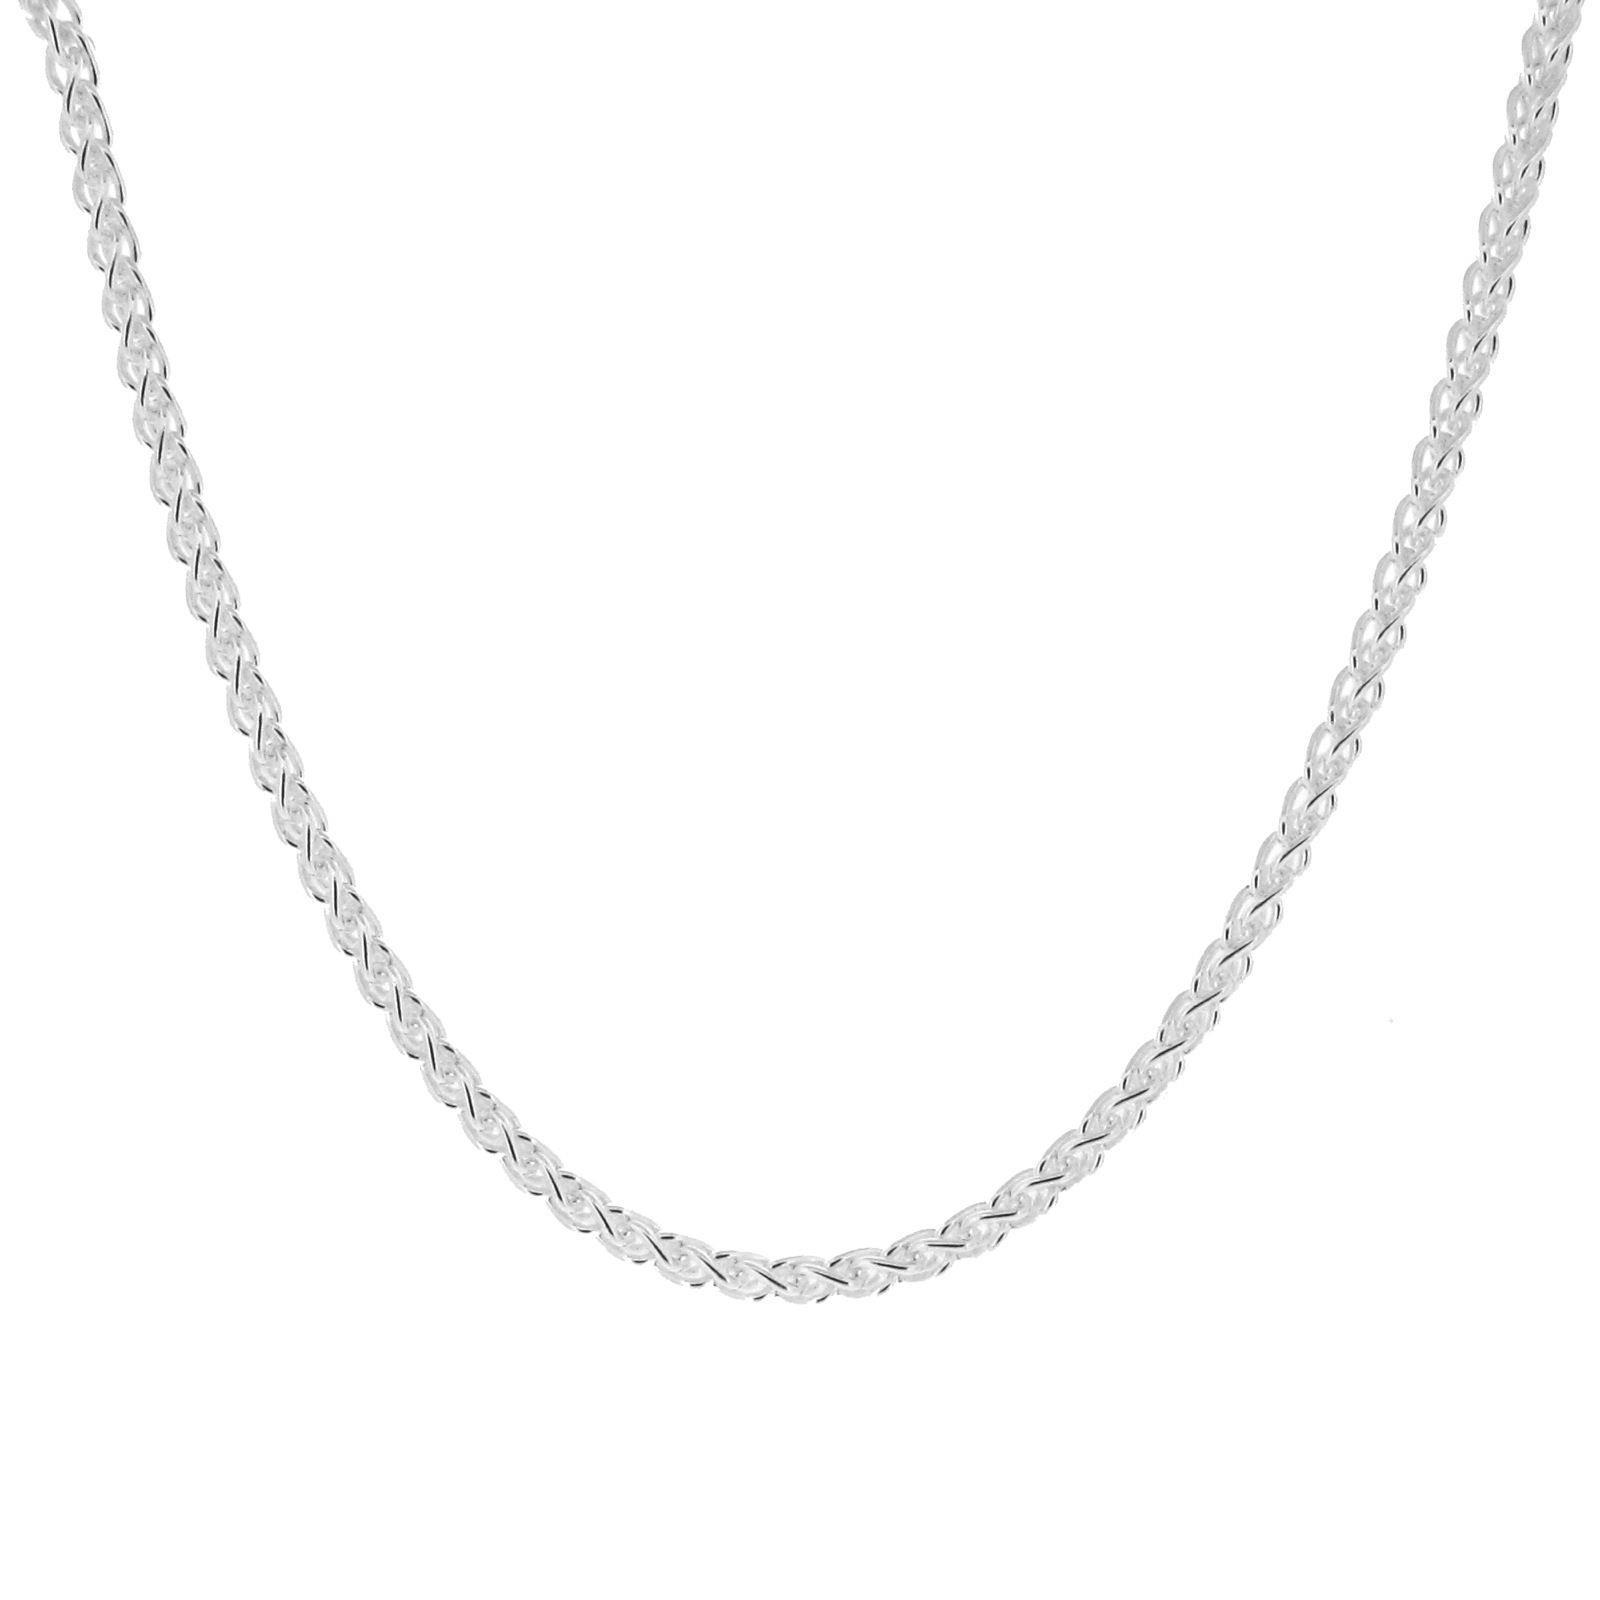 Italian made Organically E-coated Sterling Silver 1.8mm Spiga Wheat Chains